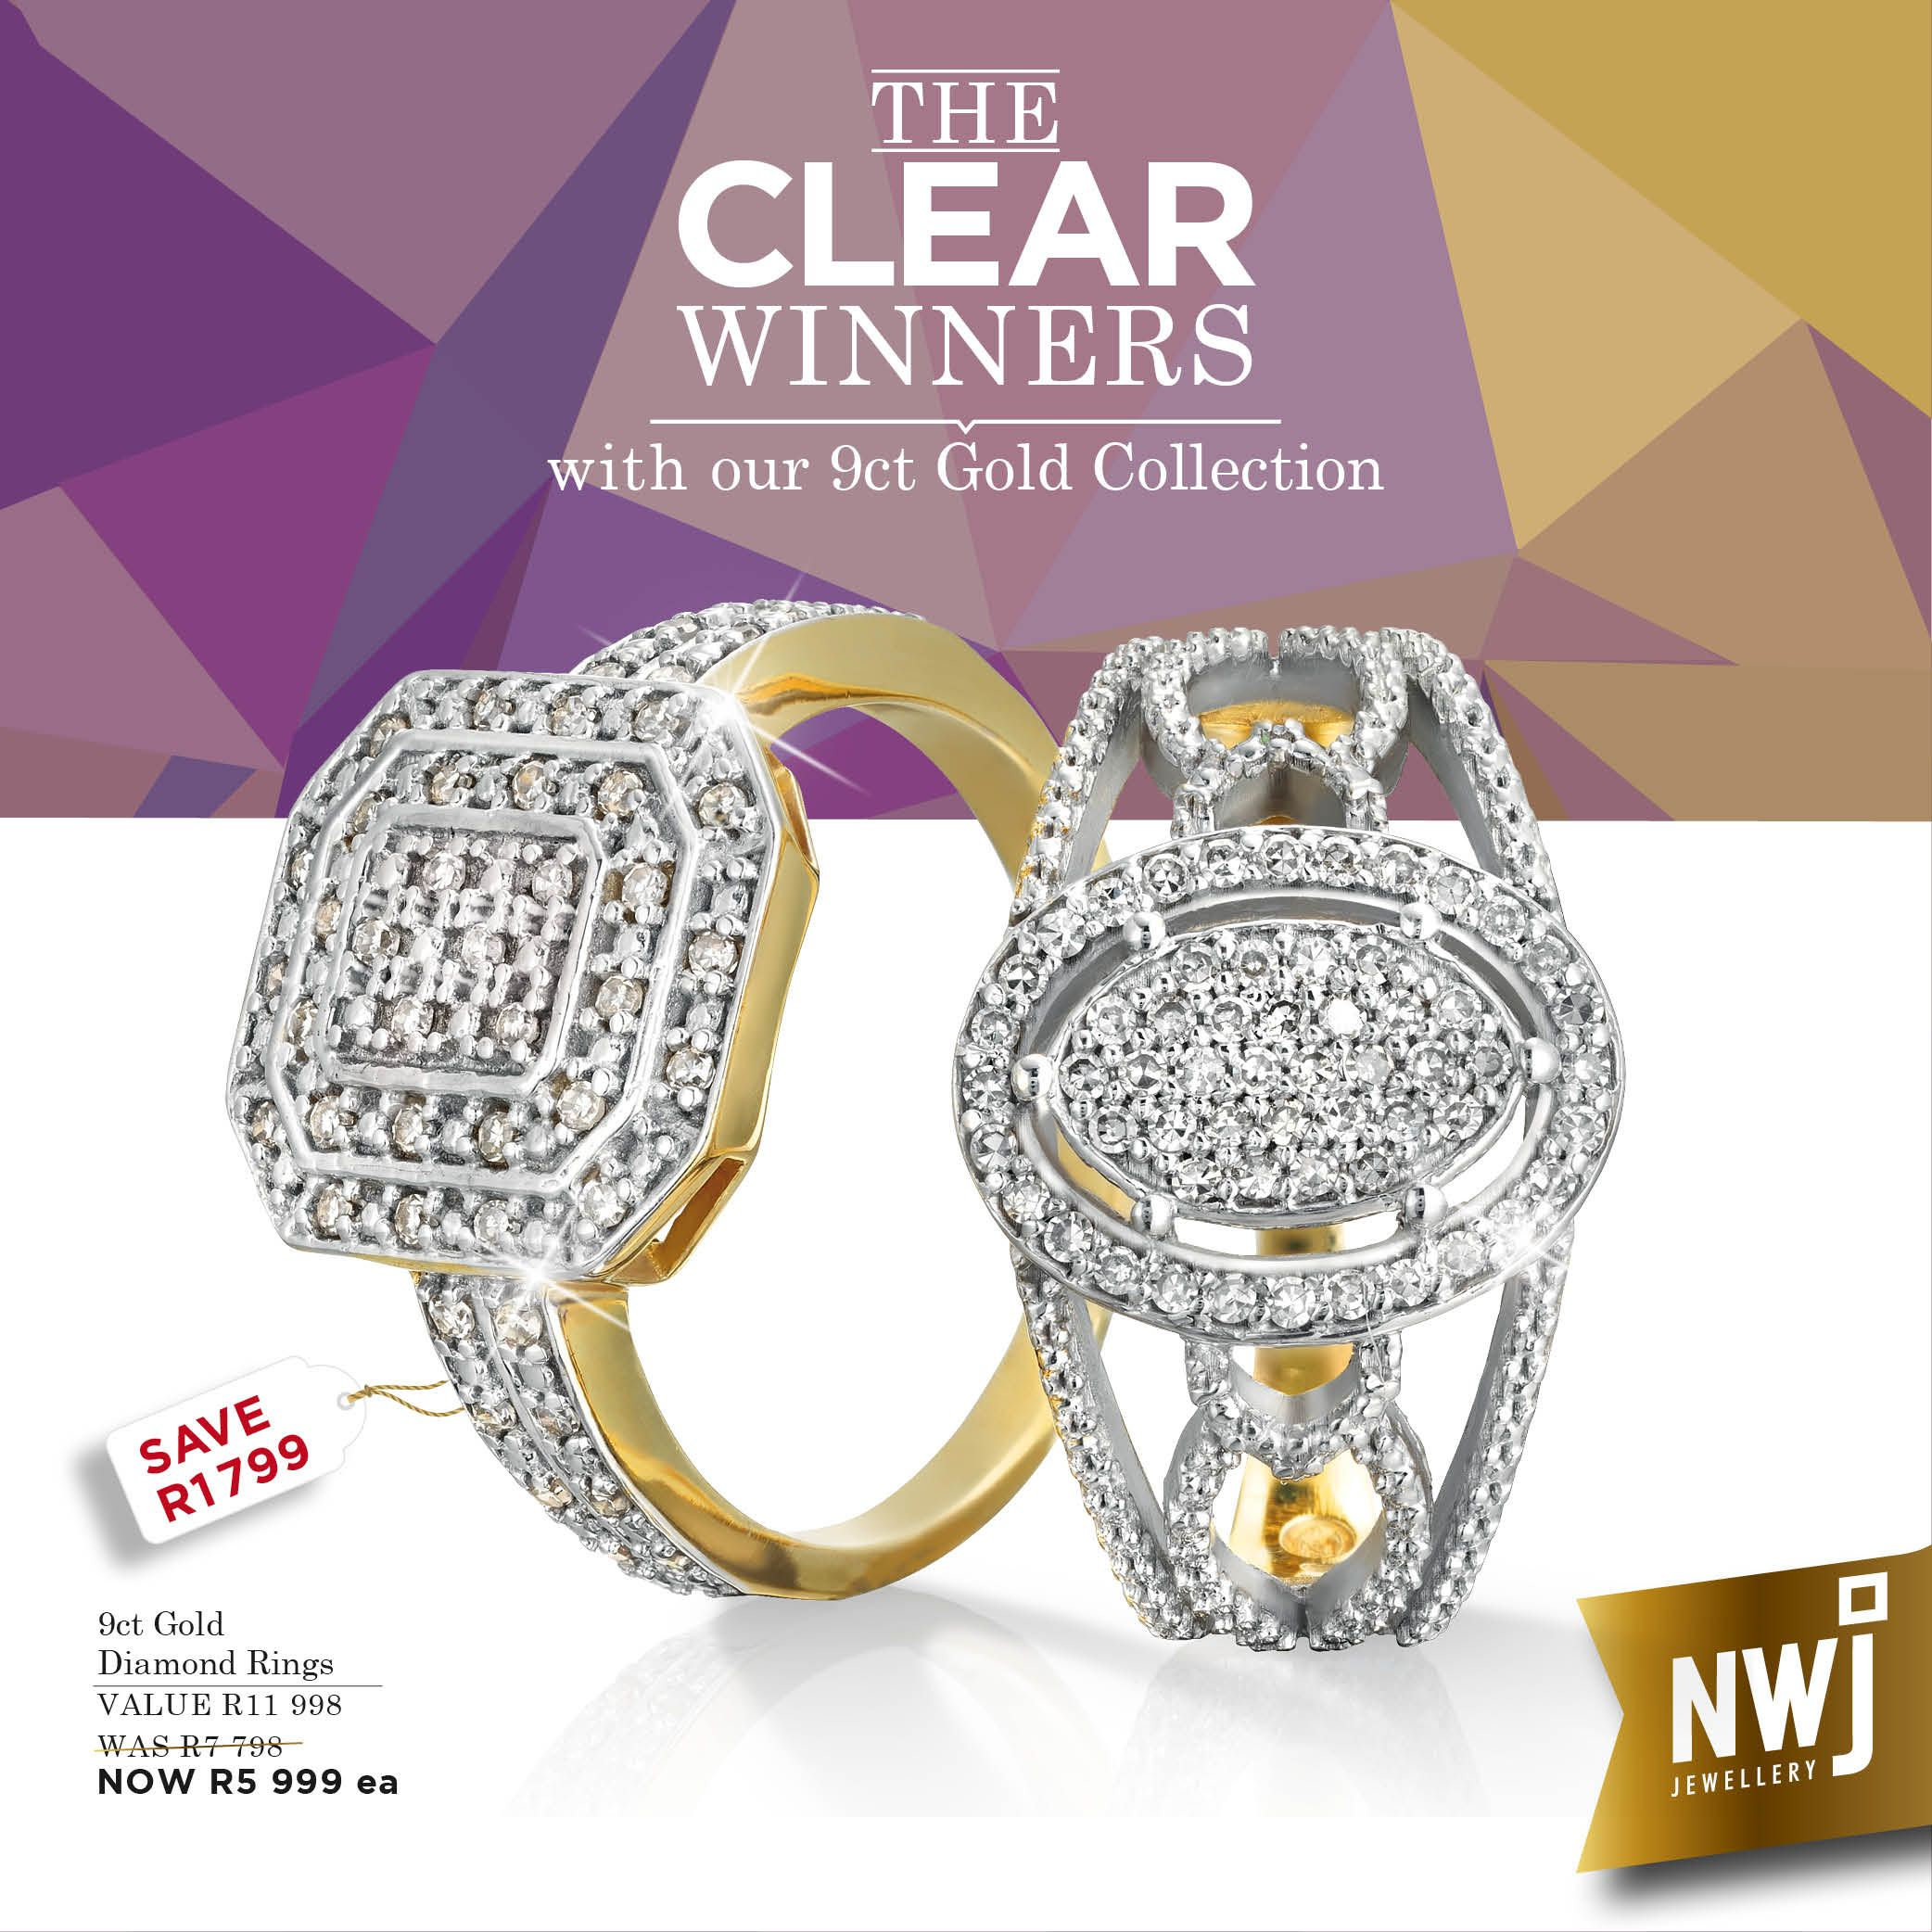 Our 9ct Gold is always 35% off at NWJ These 9ct beauties are no